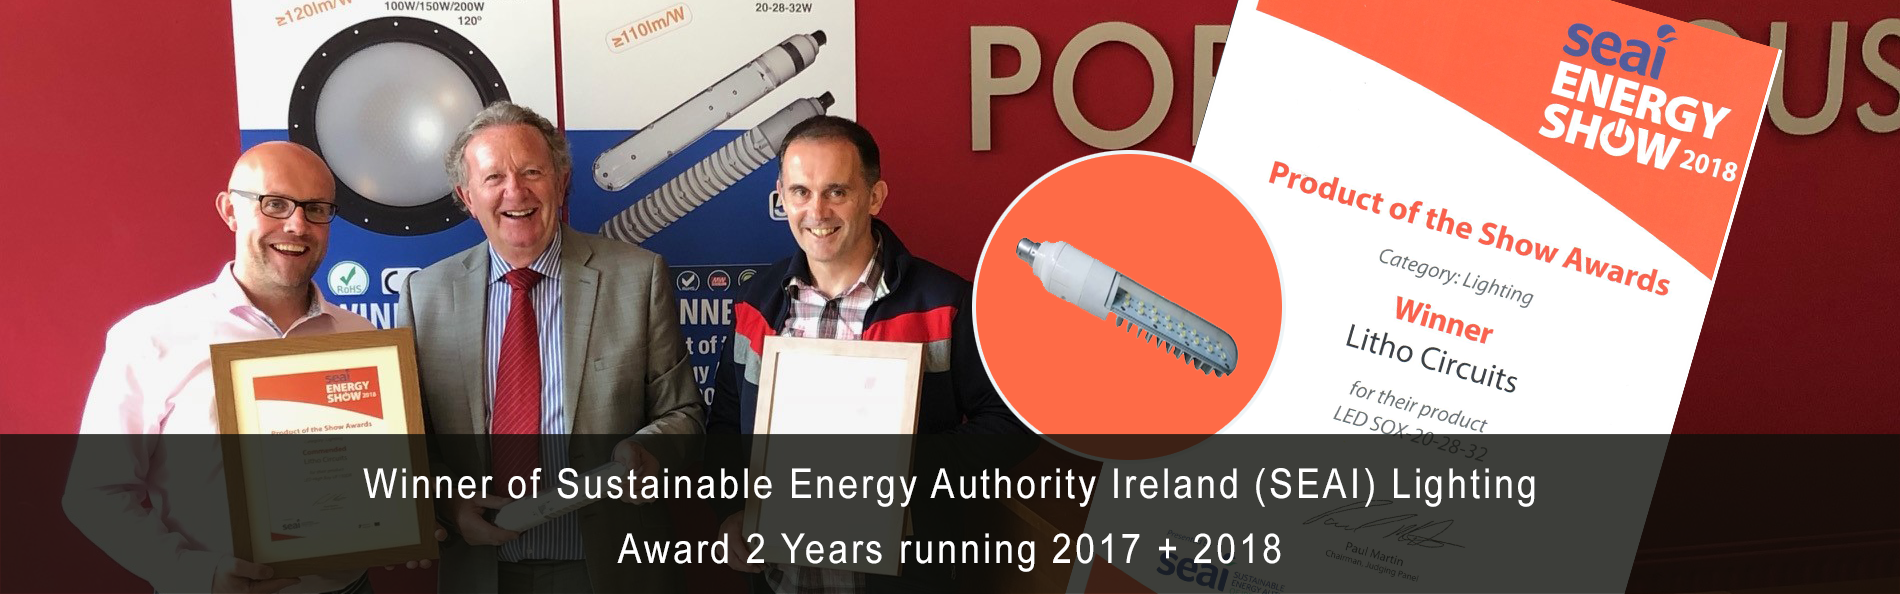 Winner of Sustainable Energy Authority Ireland (SEAI) Lighting Award 2 Years running 2017 + 2018